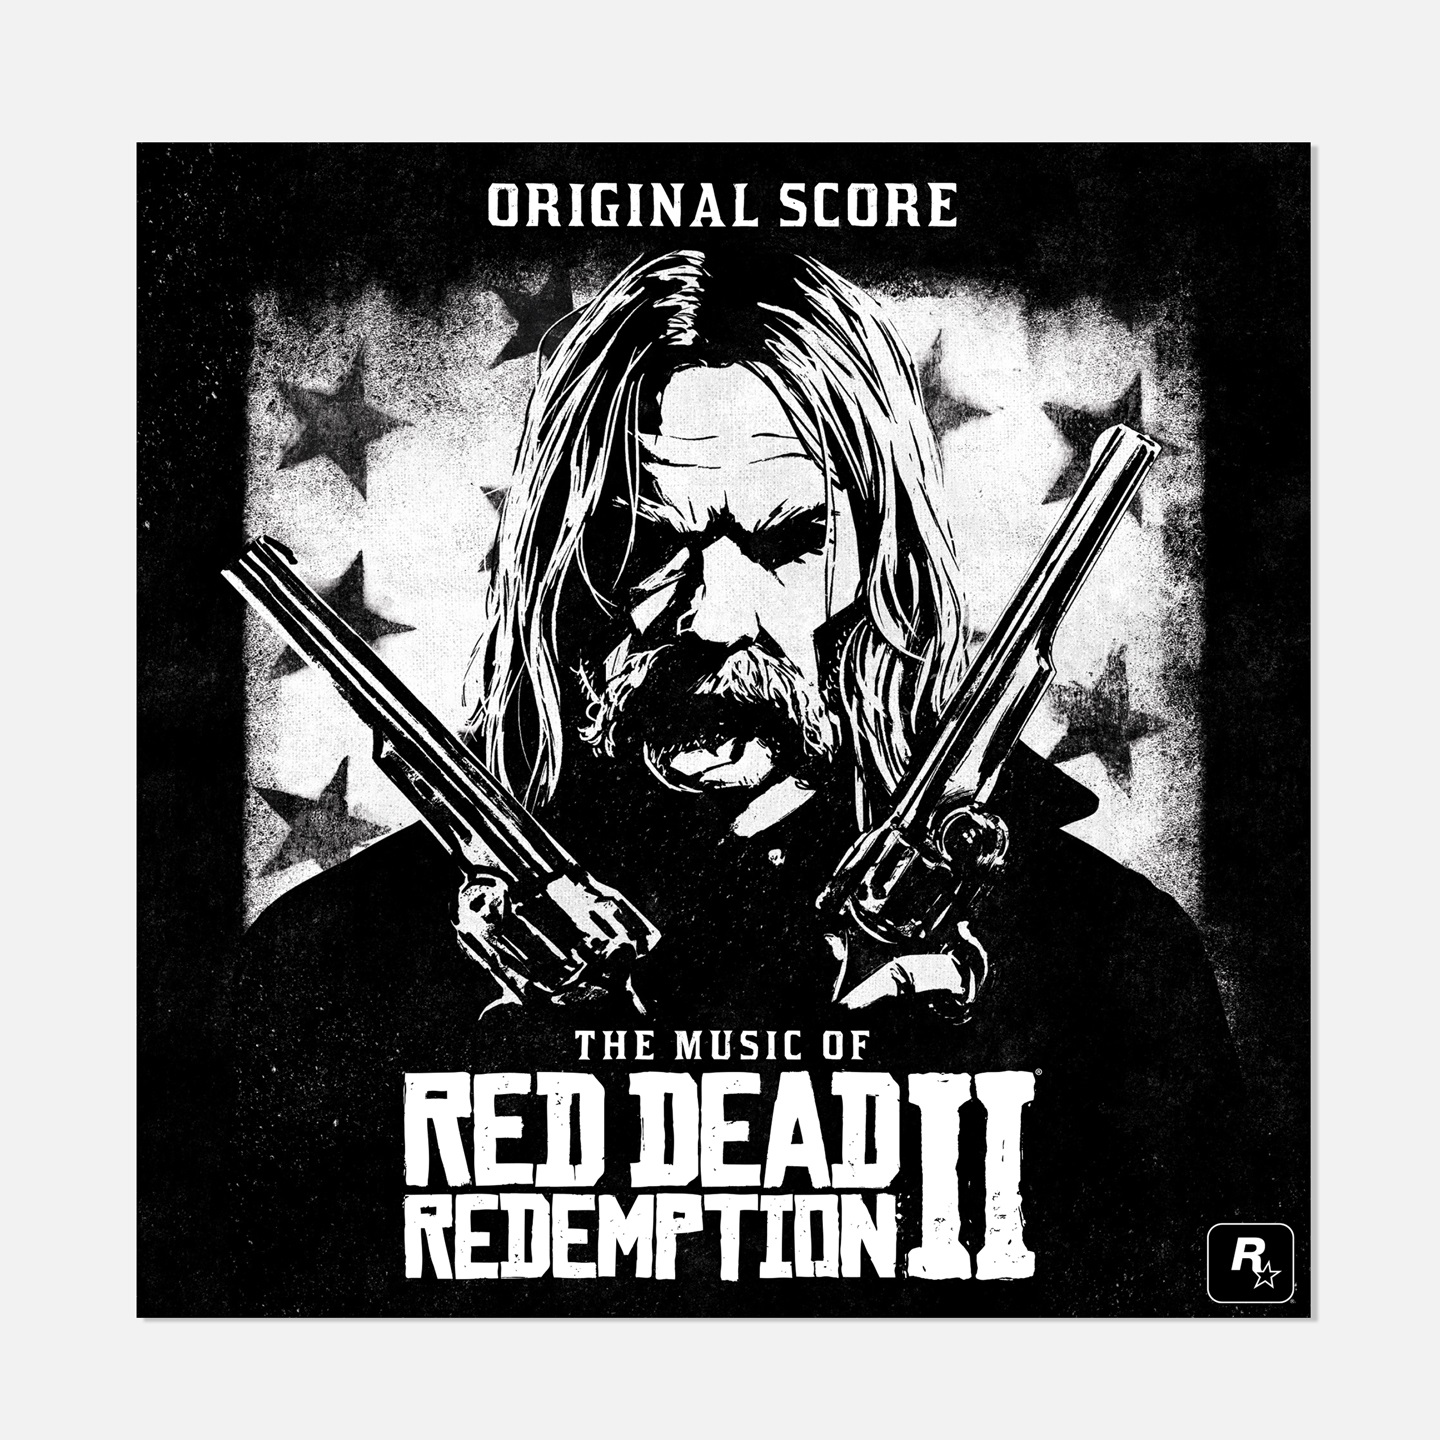 Red Dead Redemption 2: Original Score Vinyl